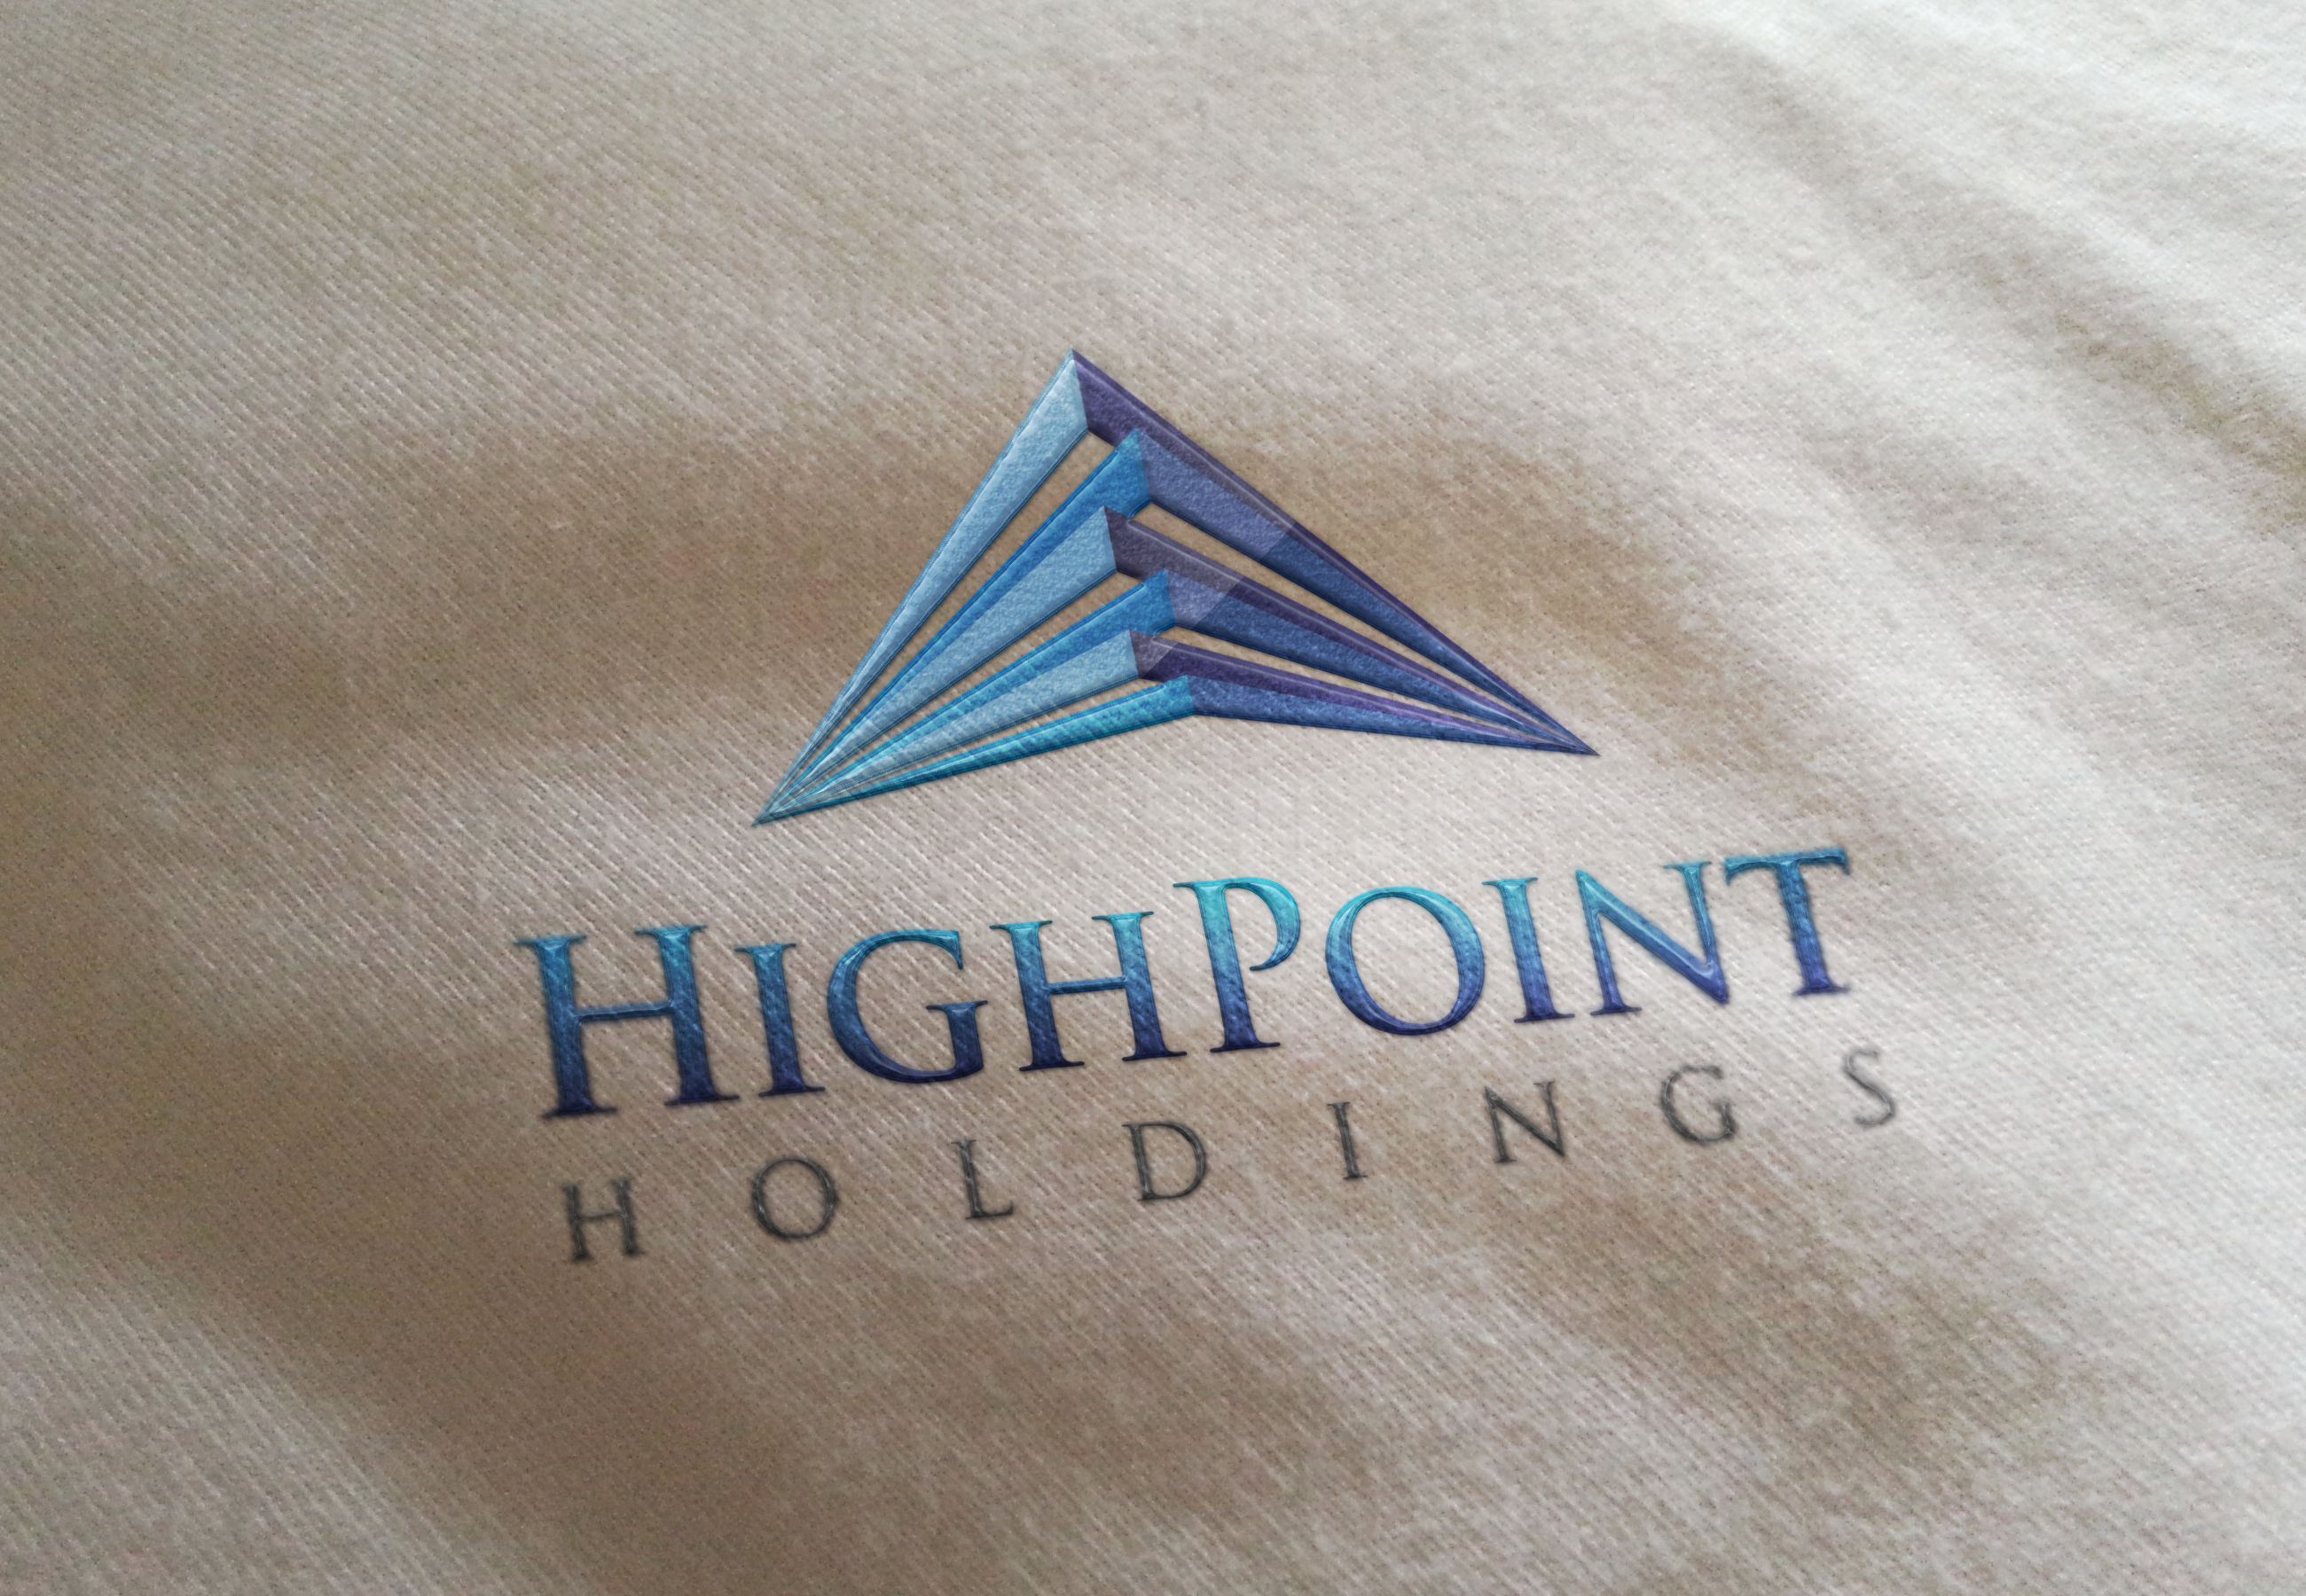 HighPoint Holdings Logo Embroidered